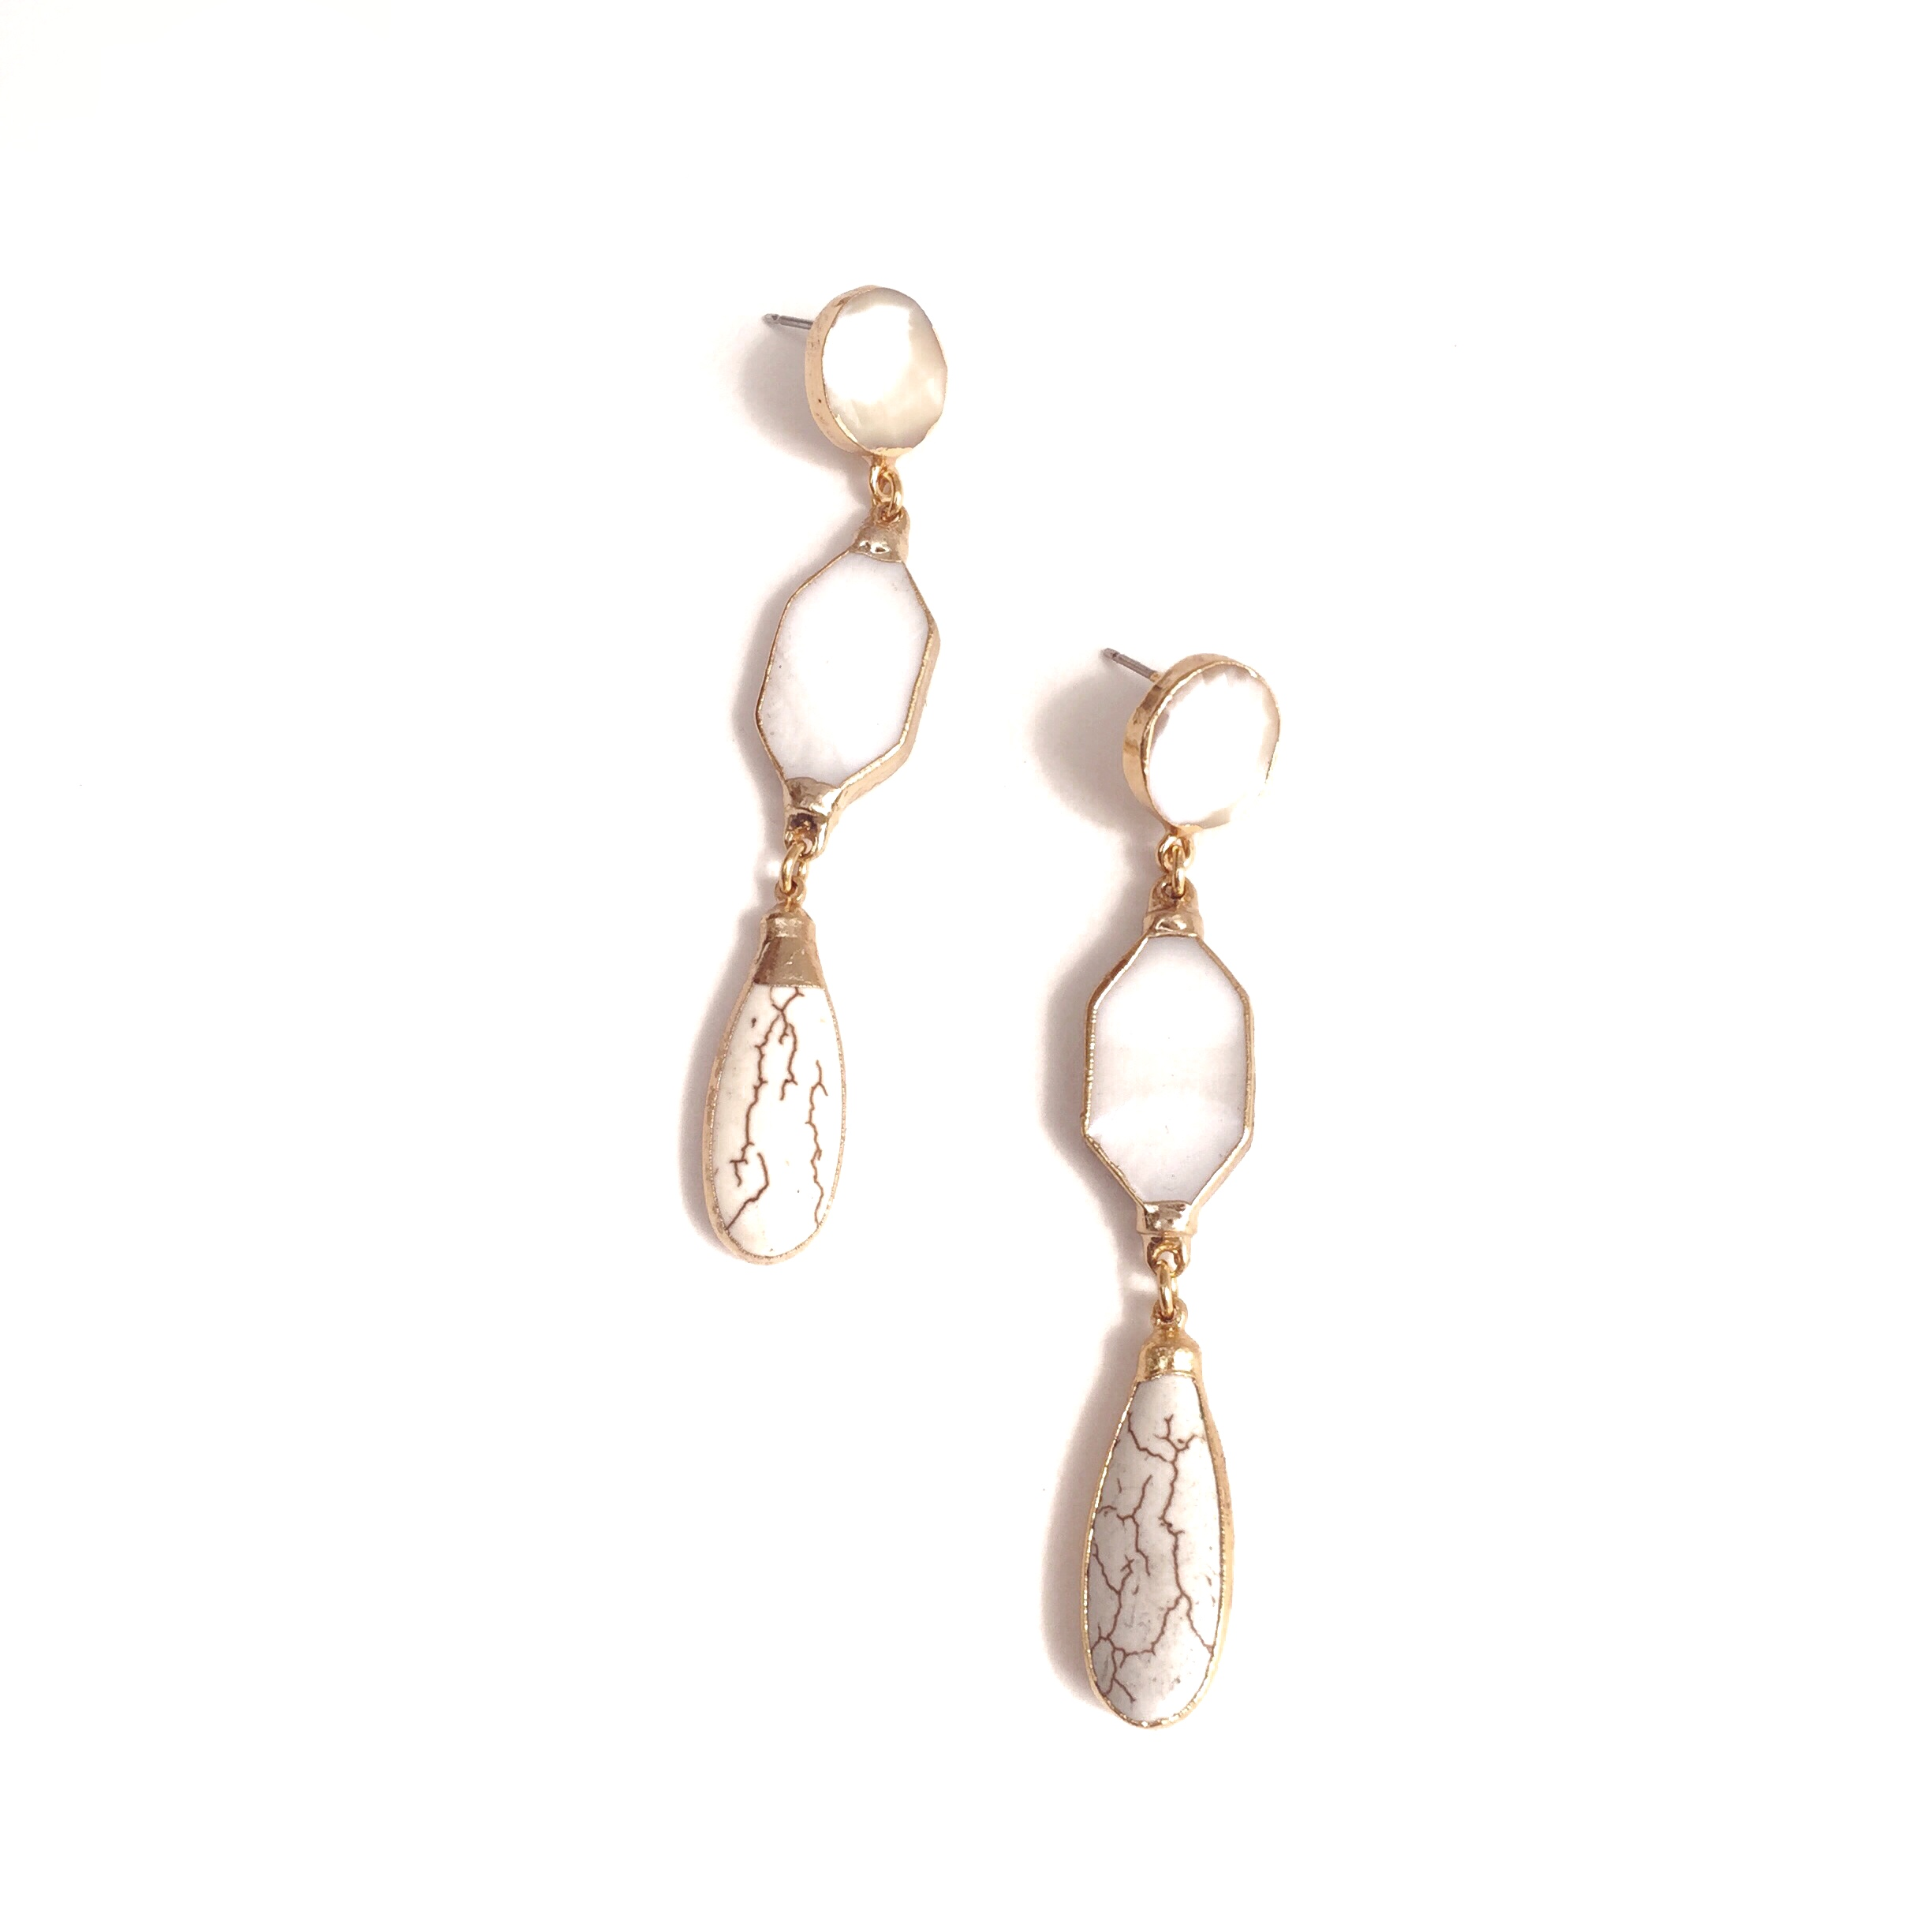 Janna Conner Adeline Earrings in Mother of Pearl and Howlite